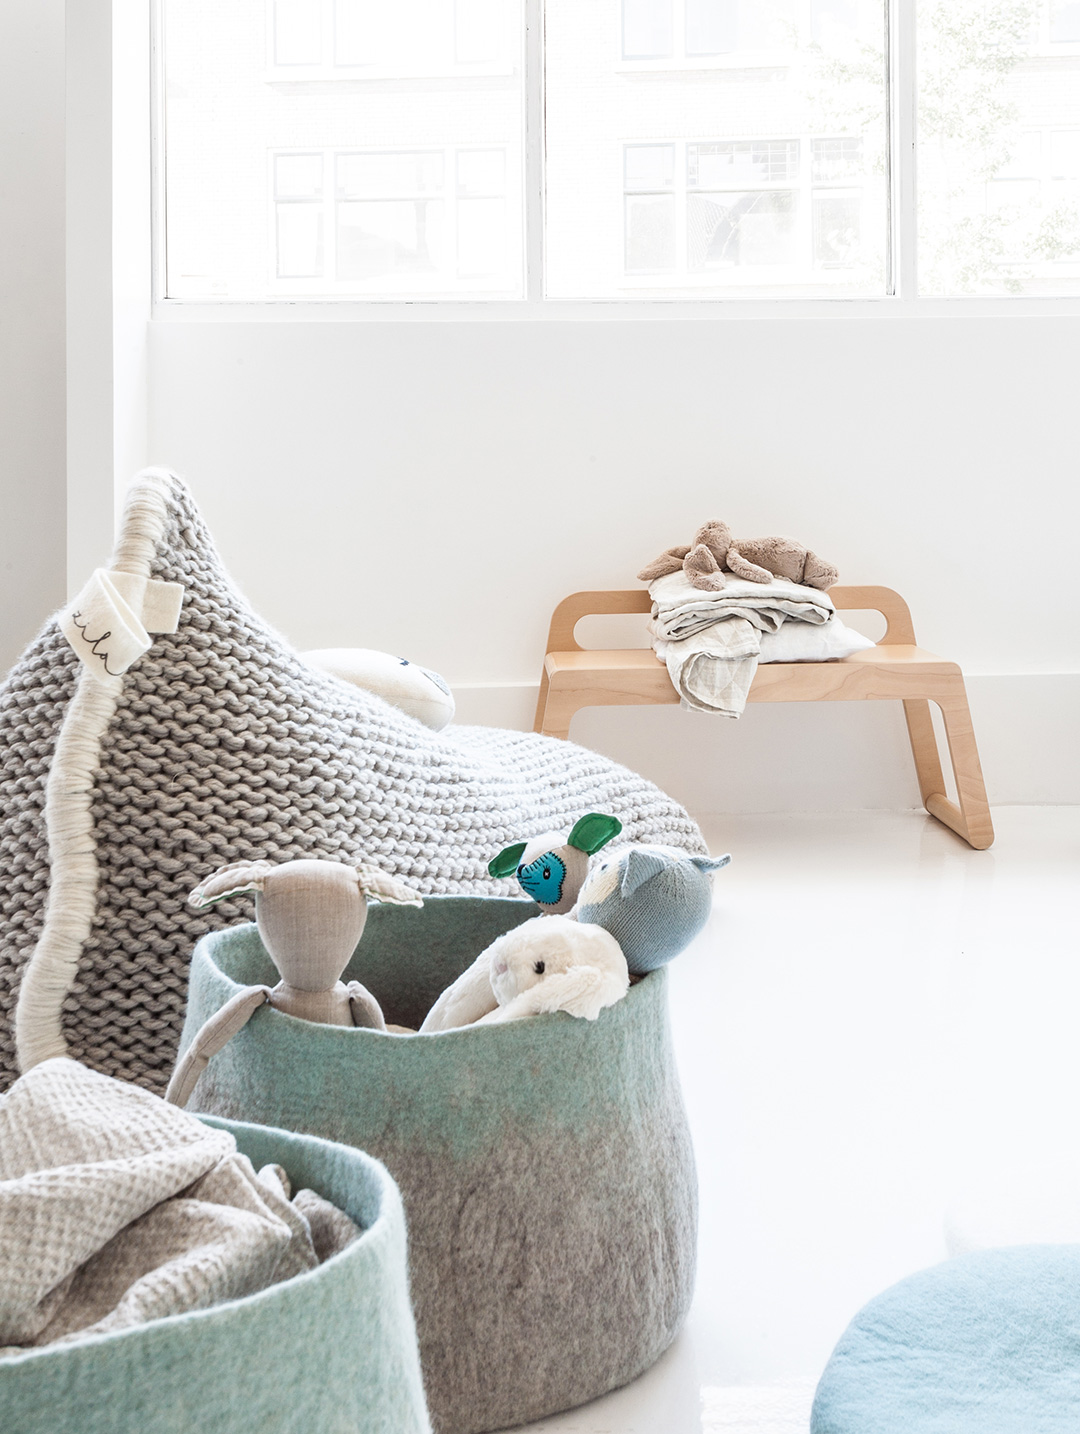 Rafa kids furniture bb90 bench in natural plywood in modern nursery